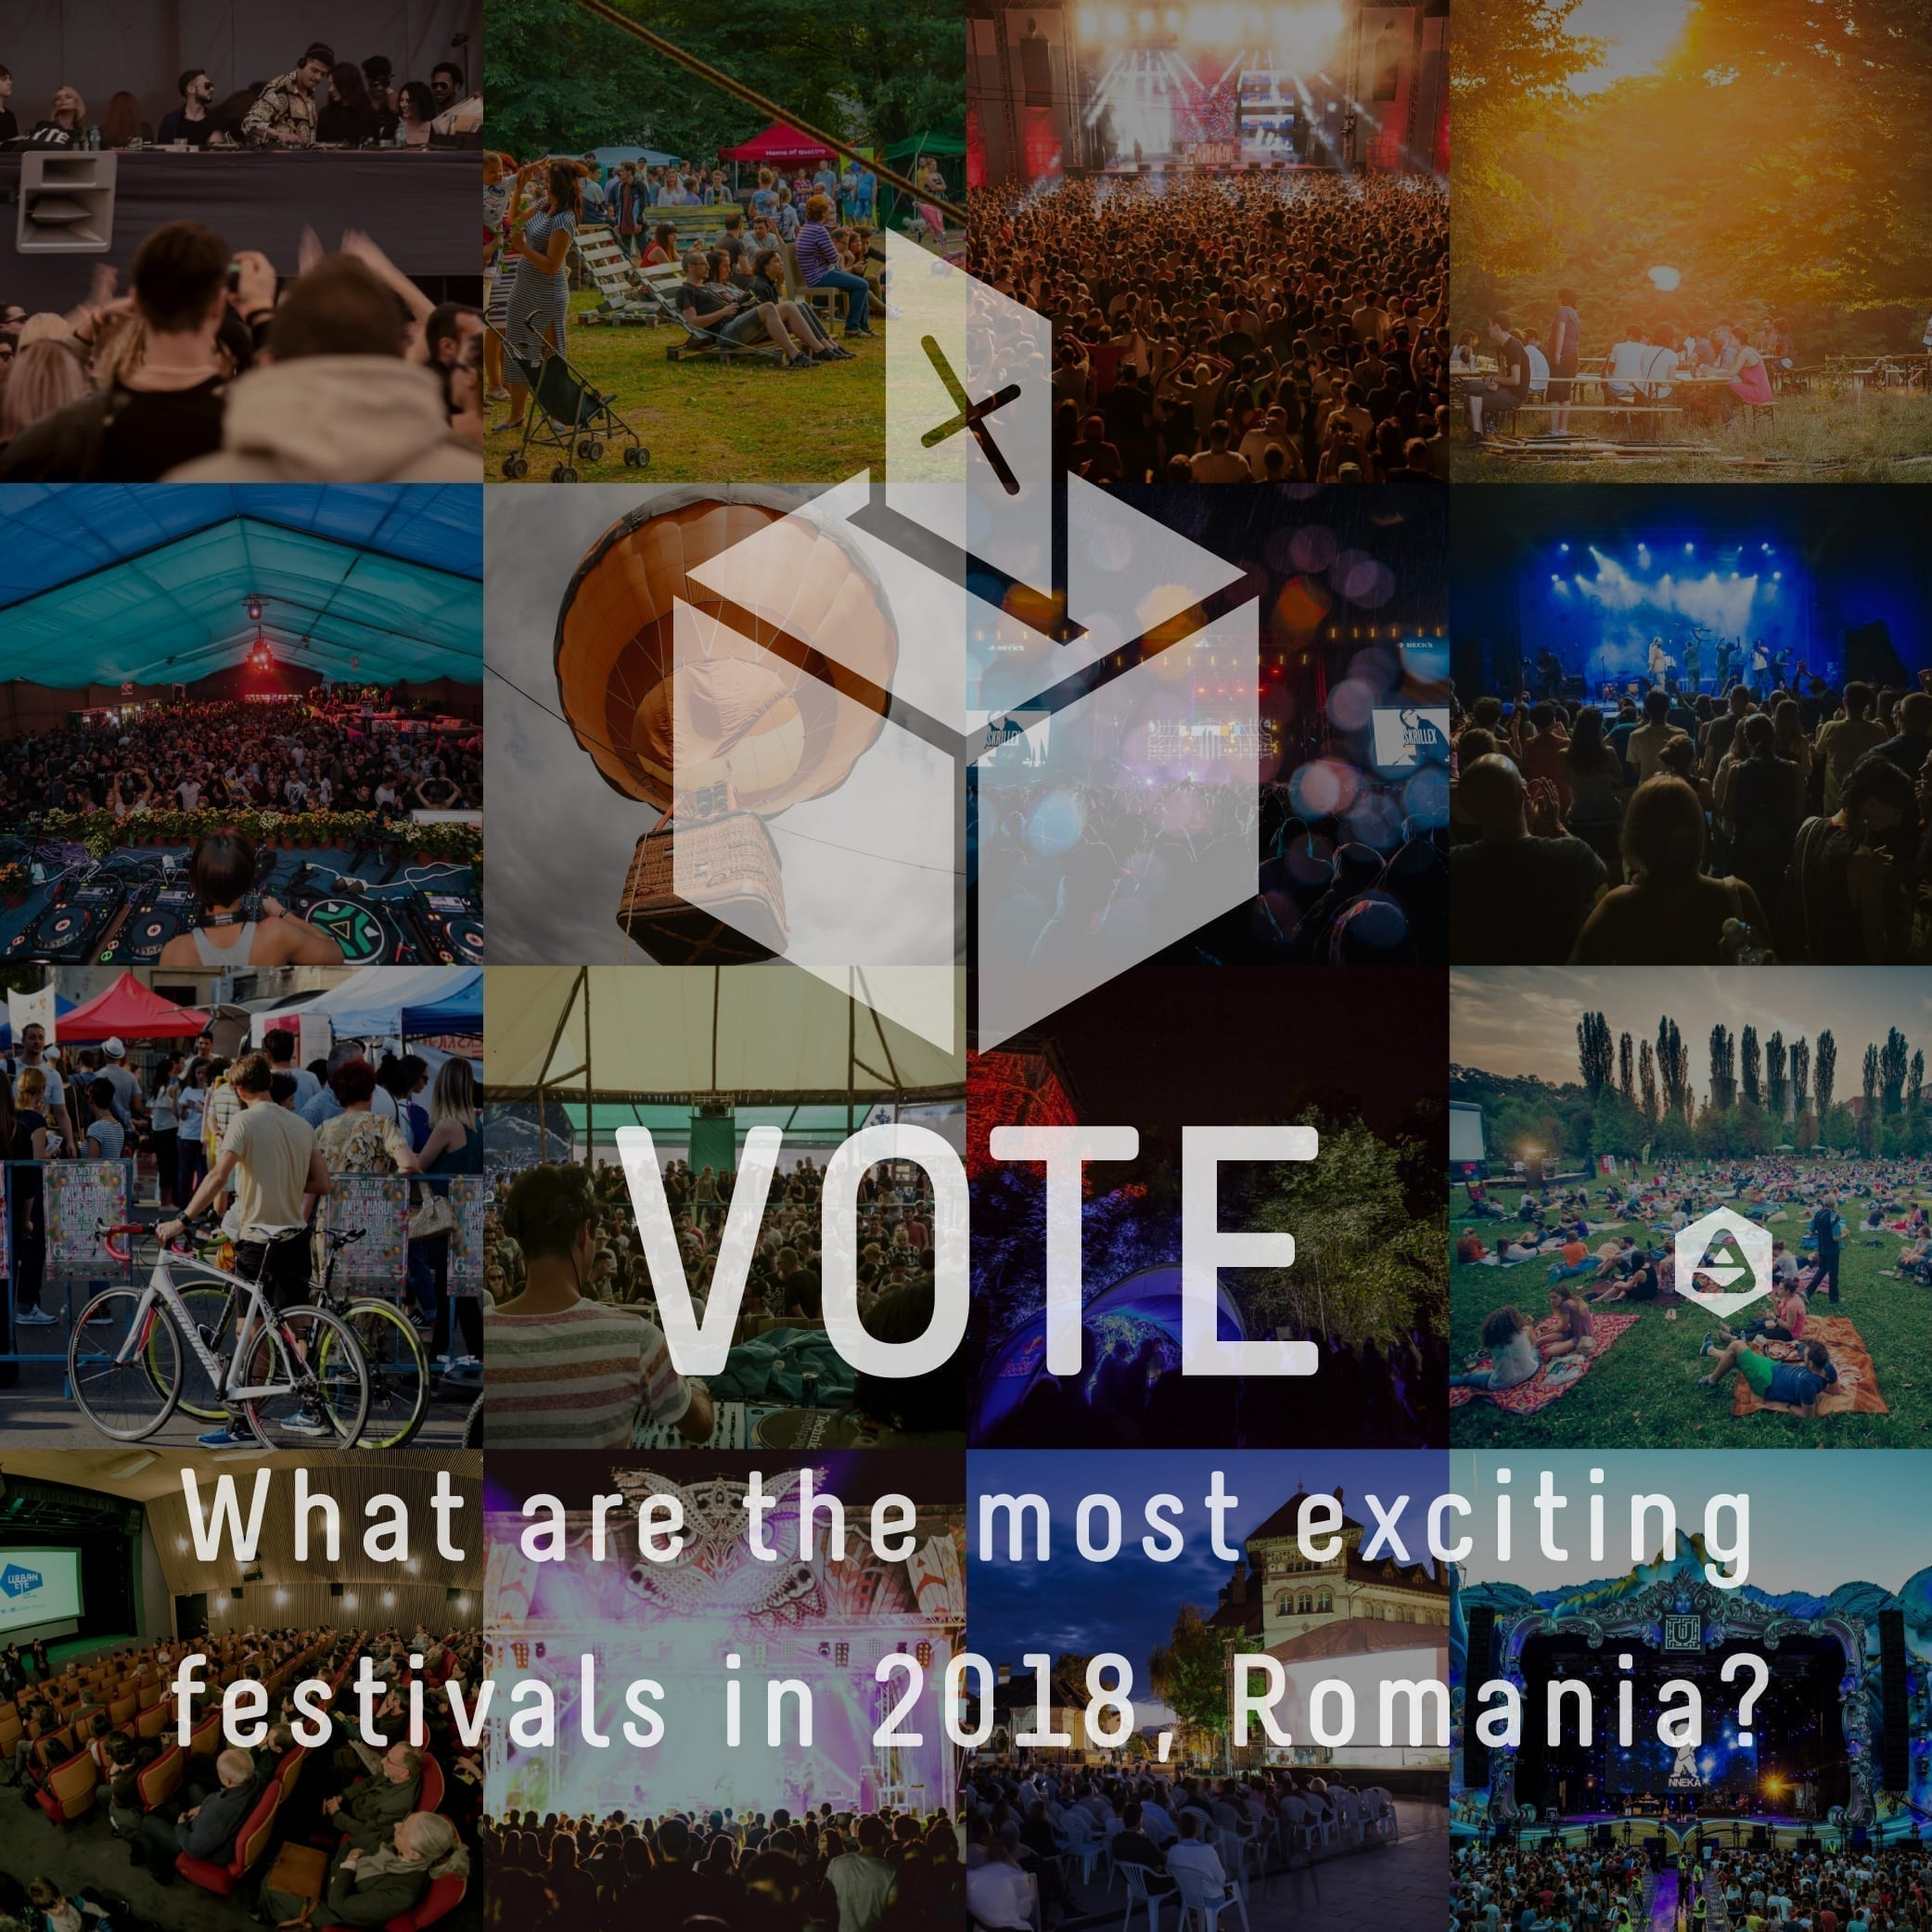 VOTE What are the most exciting festivals in 2018, Romania?